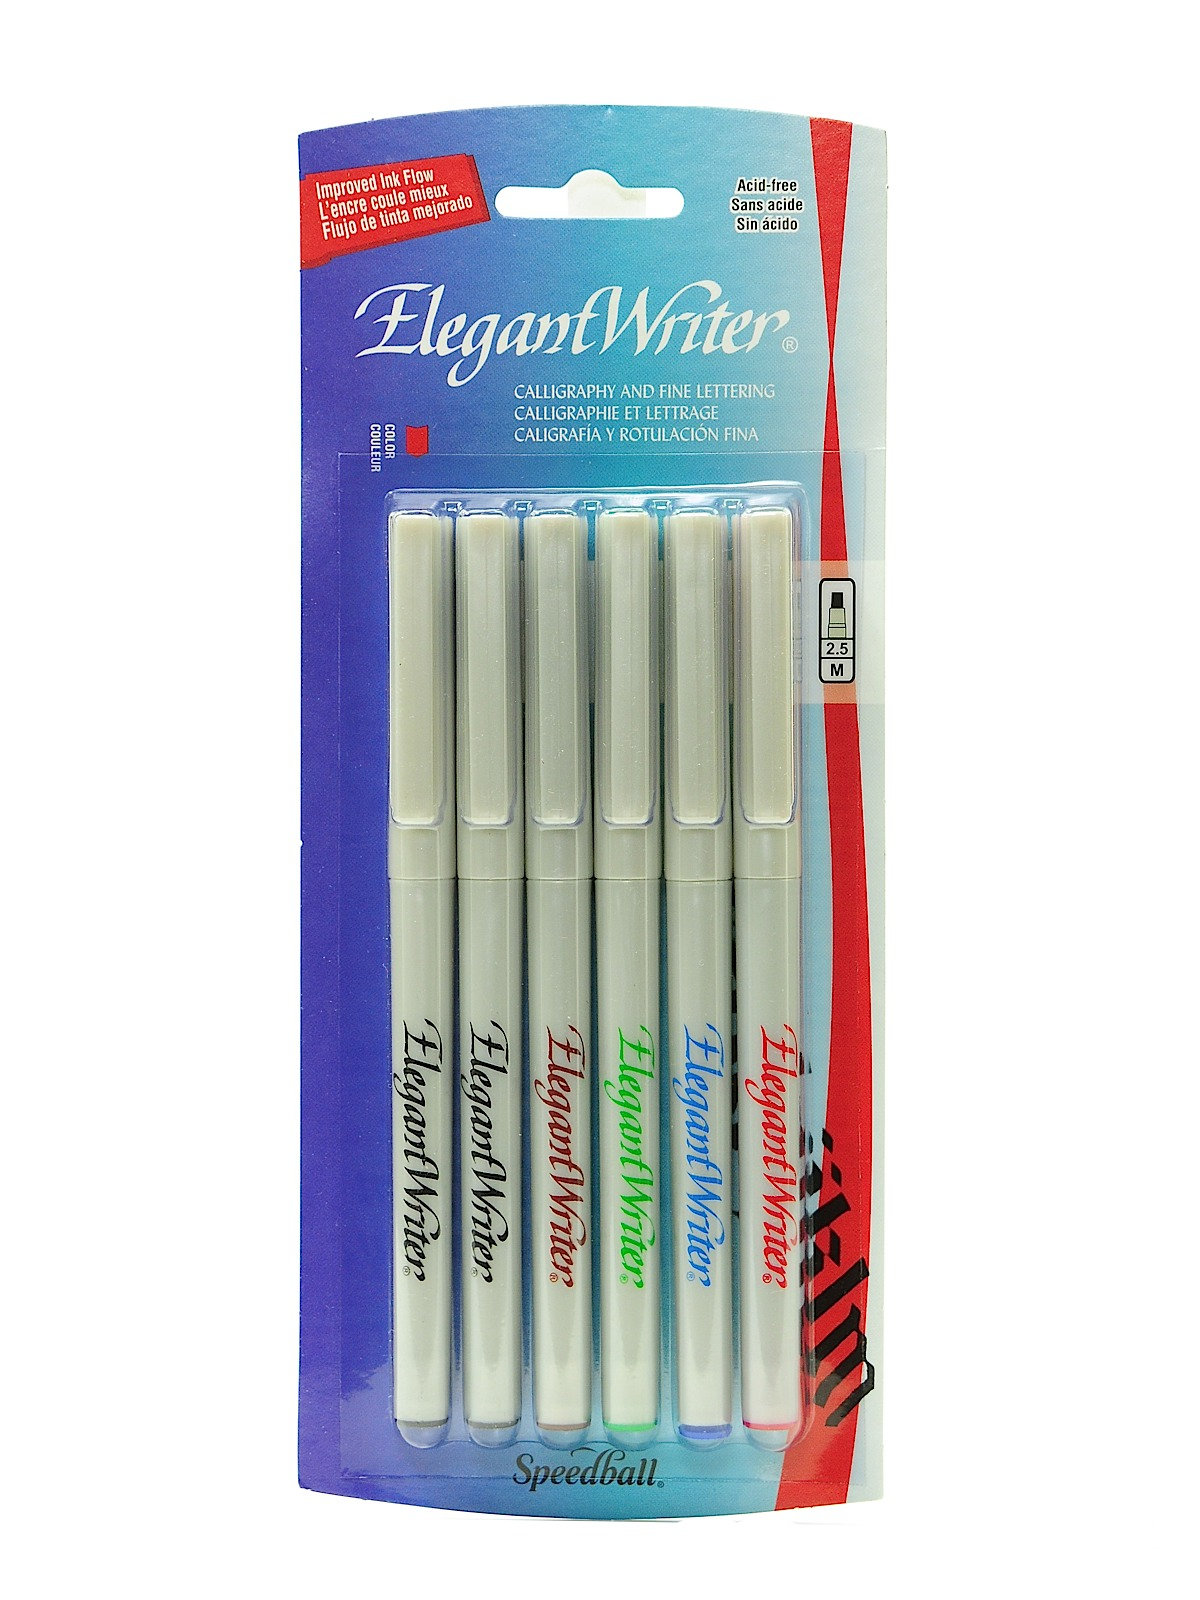 Speedball Elegant Writer Calligraphy Marker Sets